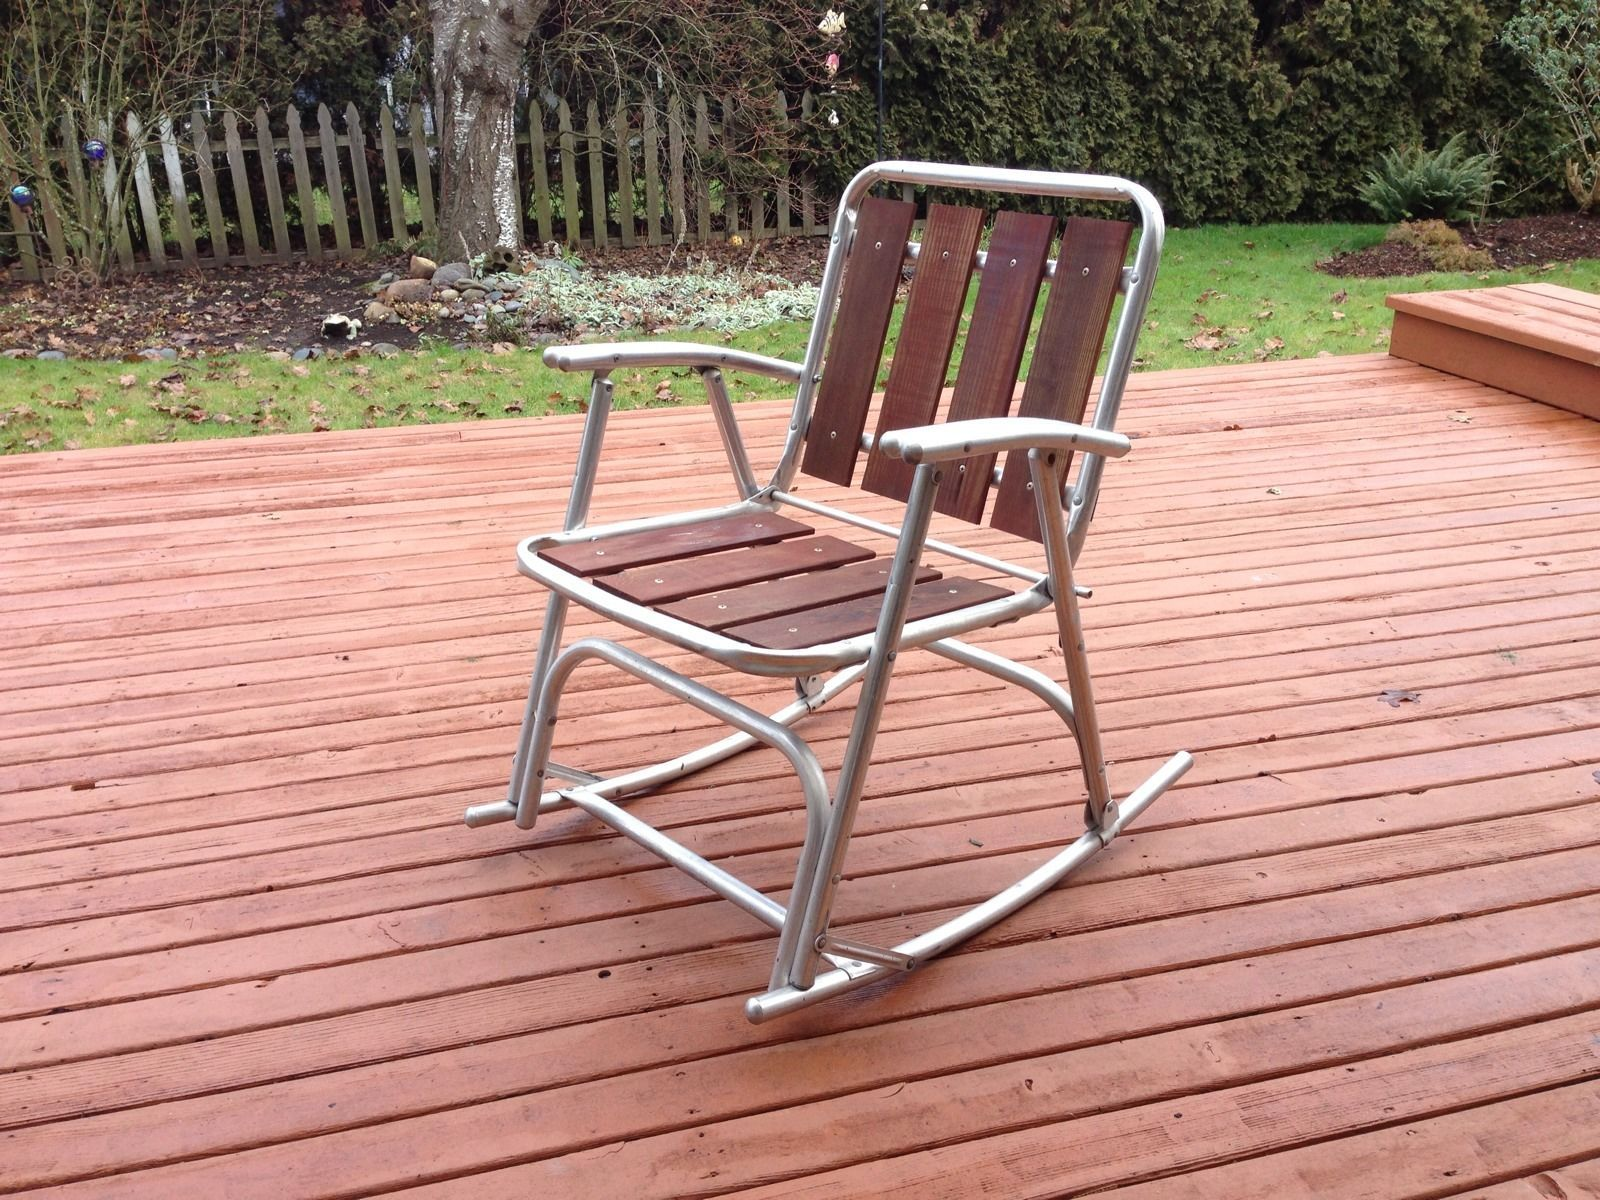 Folding Aluminum Lawn Chairs Small High Chair 1 Vtg Redwood Outdoor Patio Porch Rocking